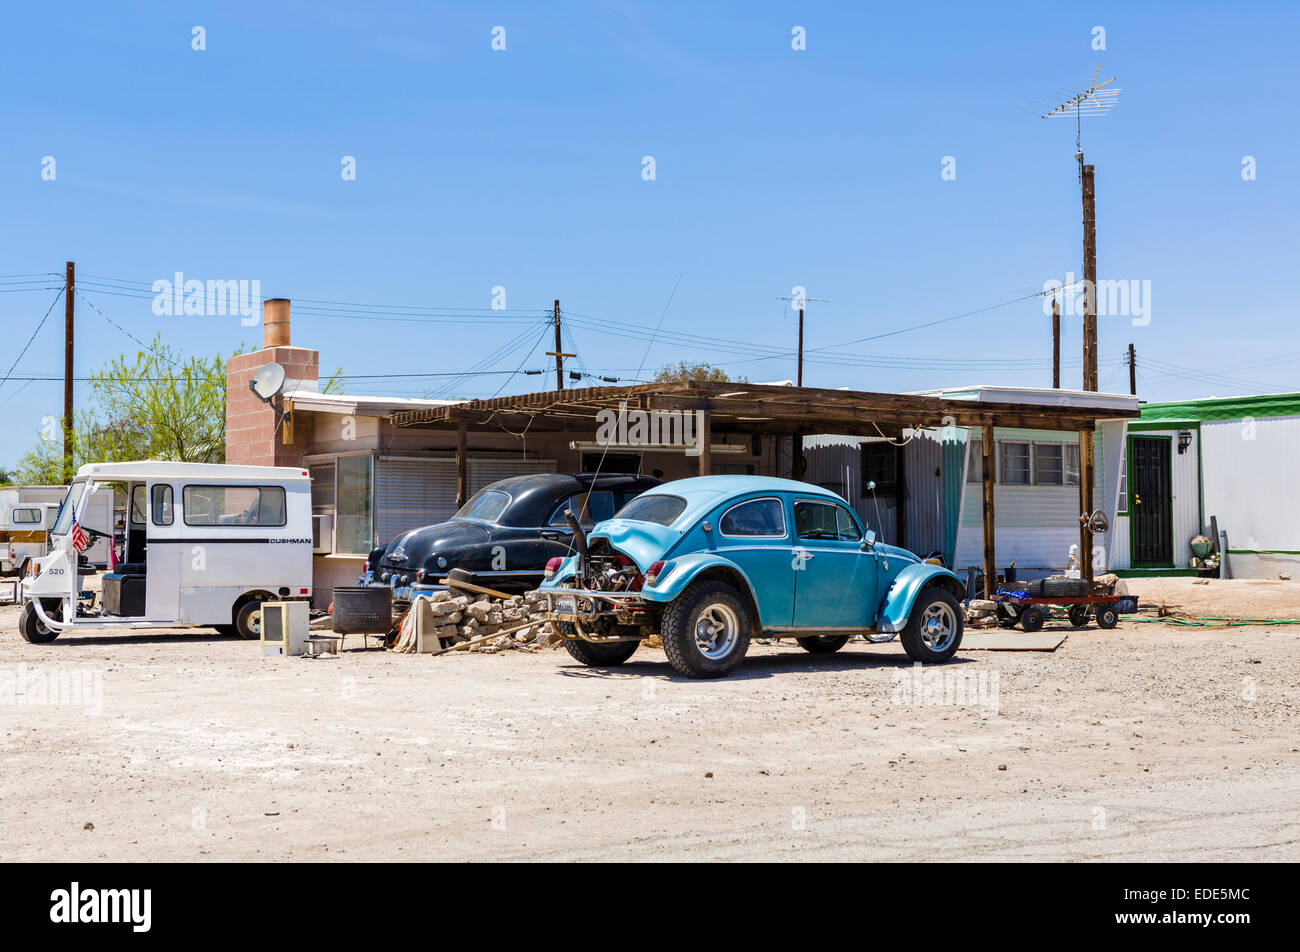 Mobile homes at Bombay Beach on the Salton Sea, Imperial County, California, USA - Stock Image